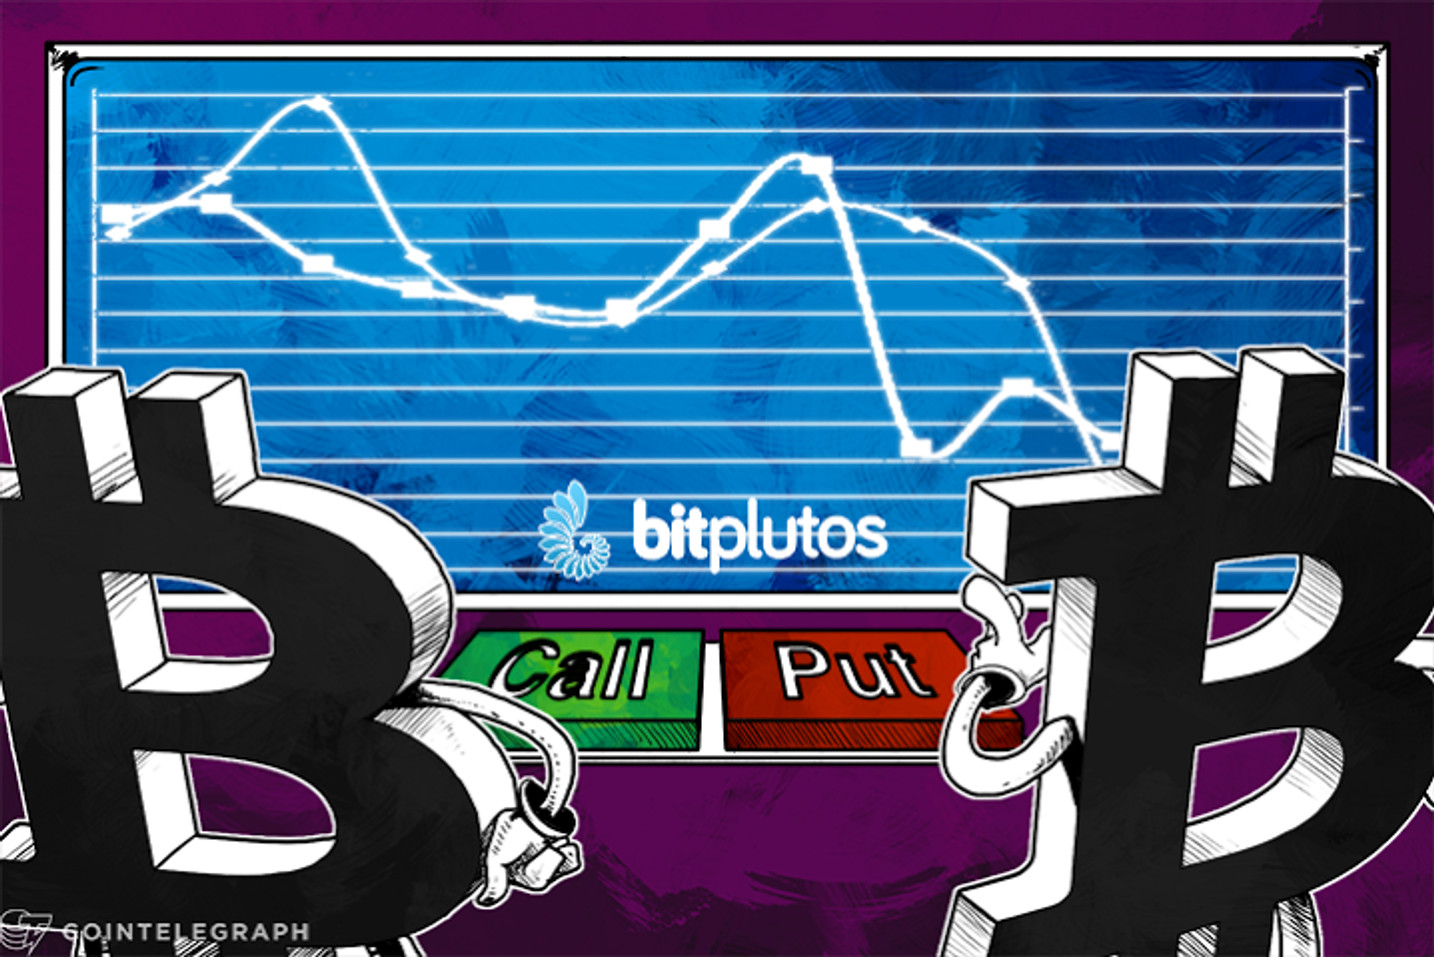 Binary Options Bring 'Immense' Opportunity for Bitcoin Users